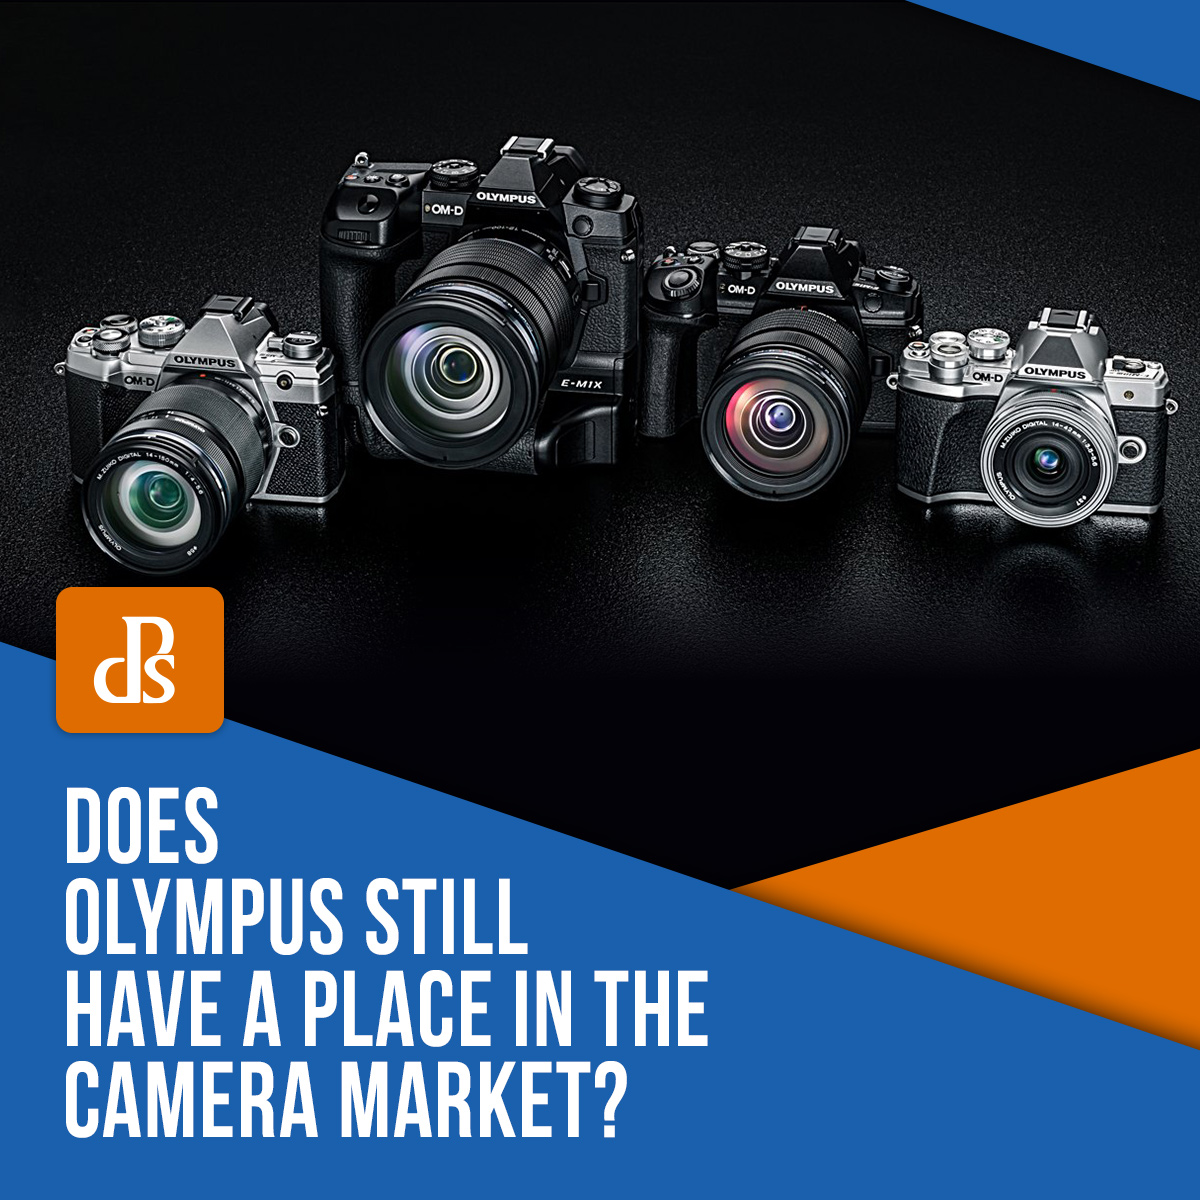 pros and cons of olypmus cameras